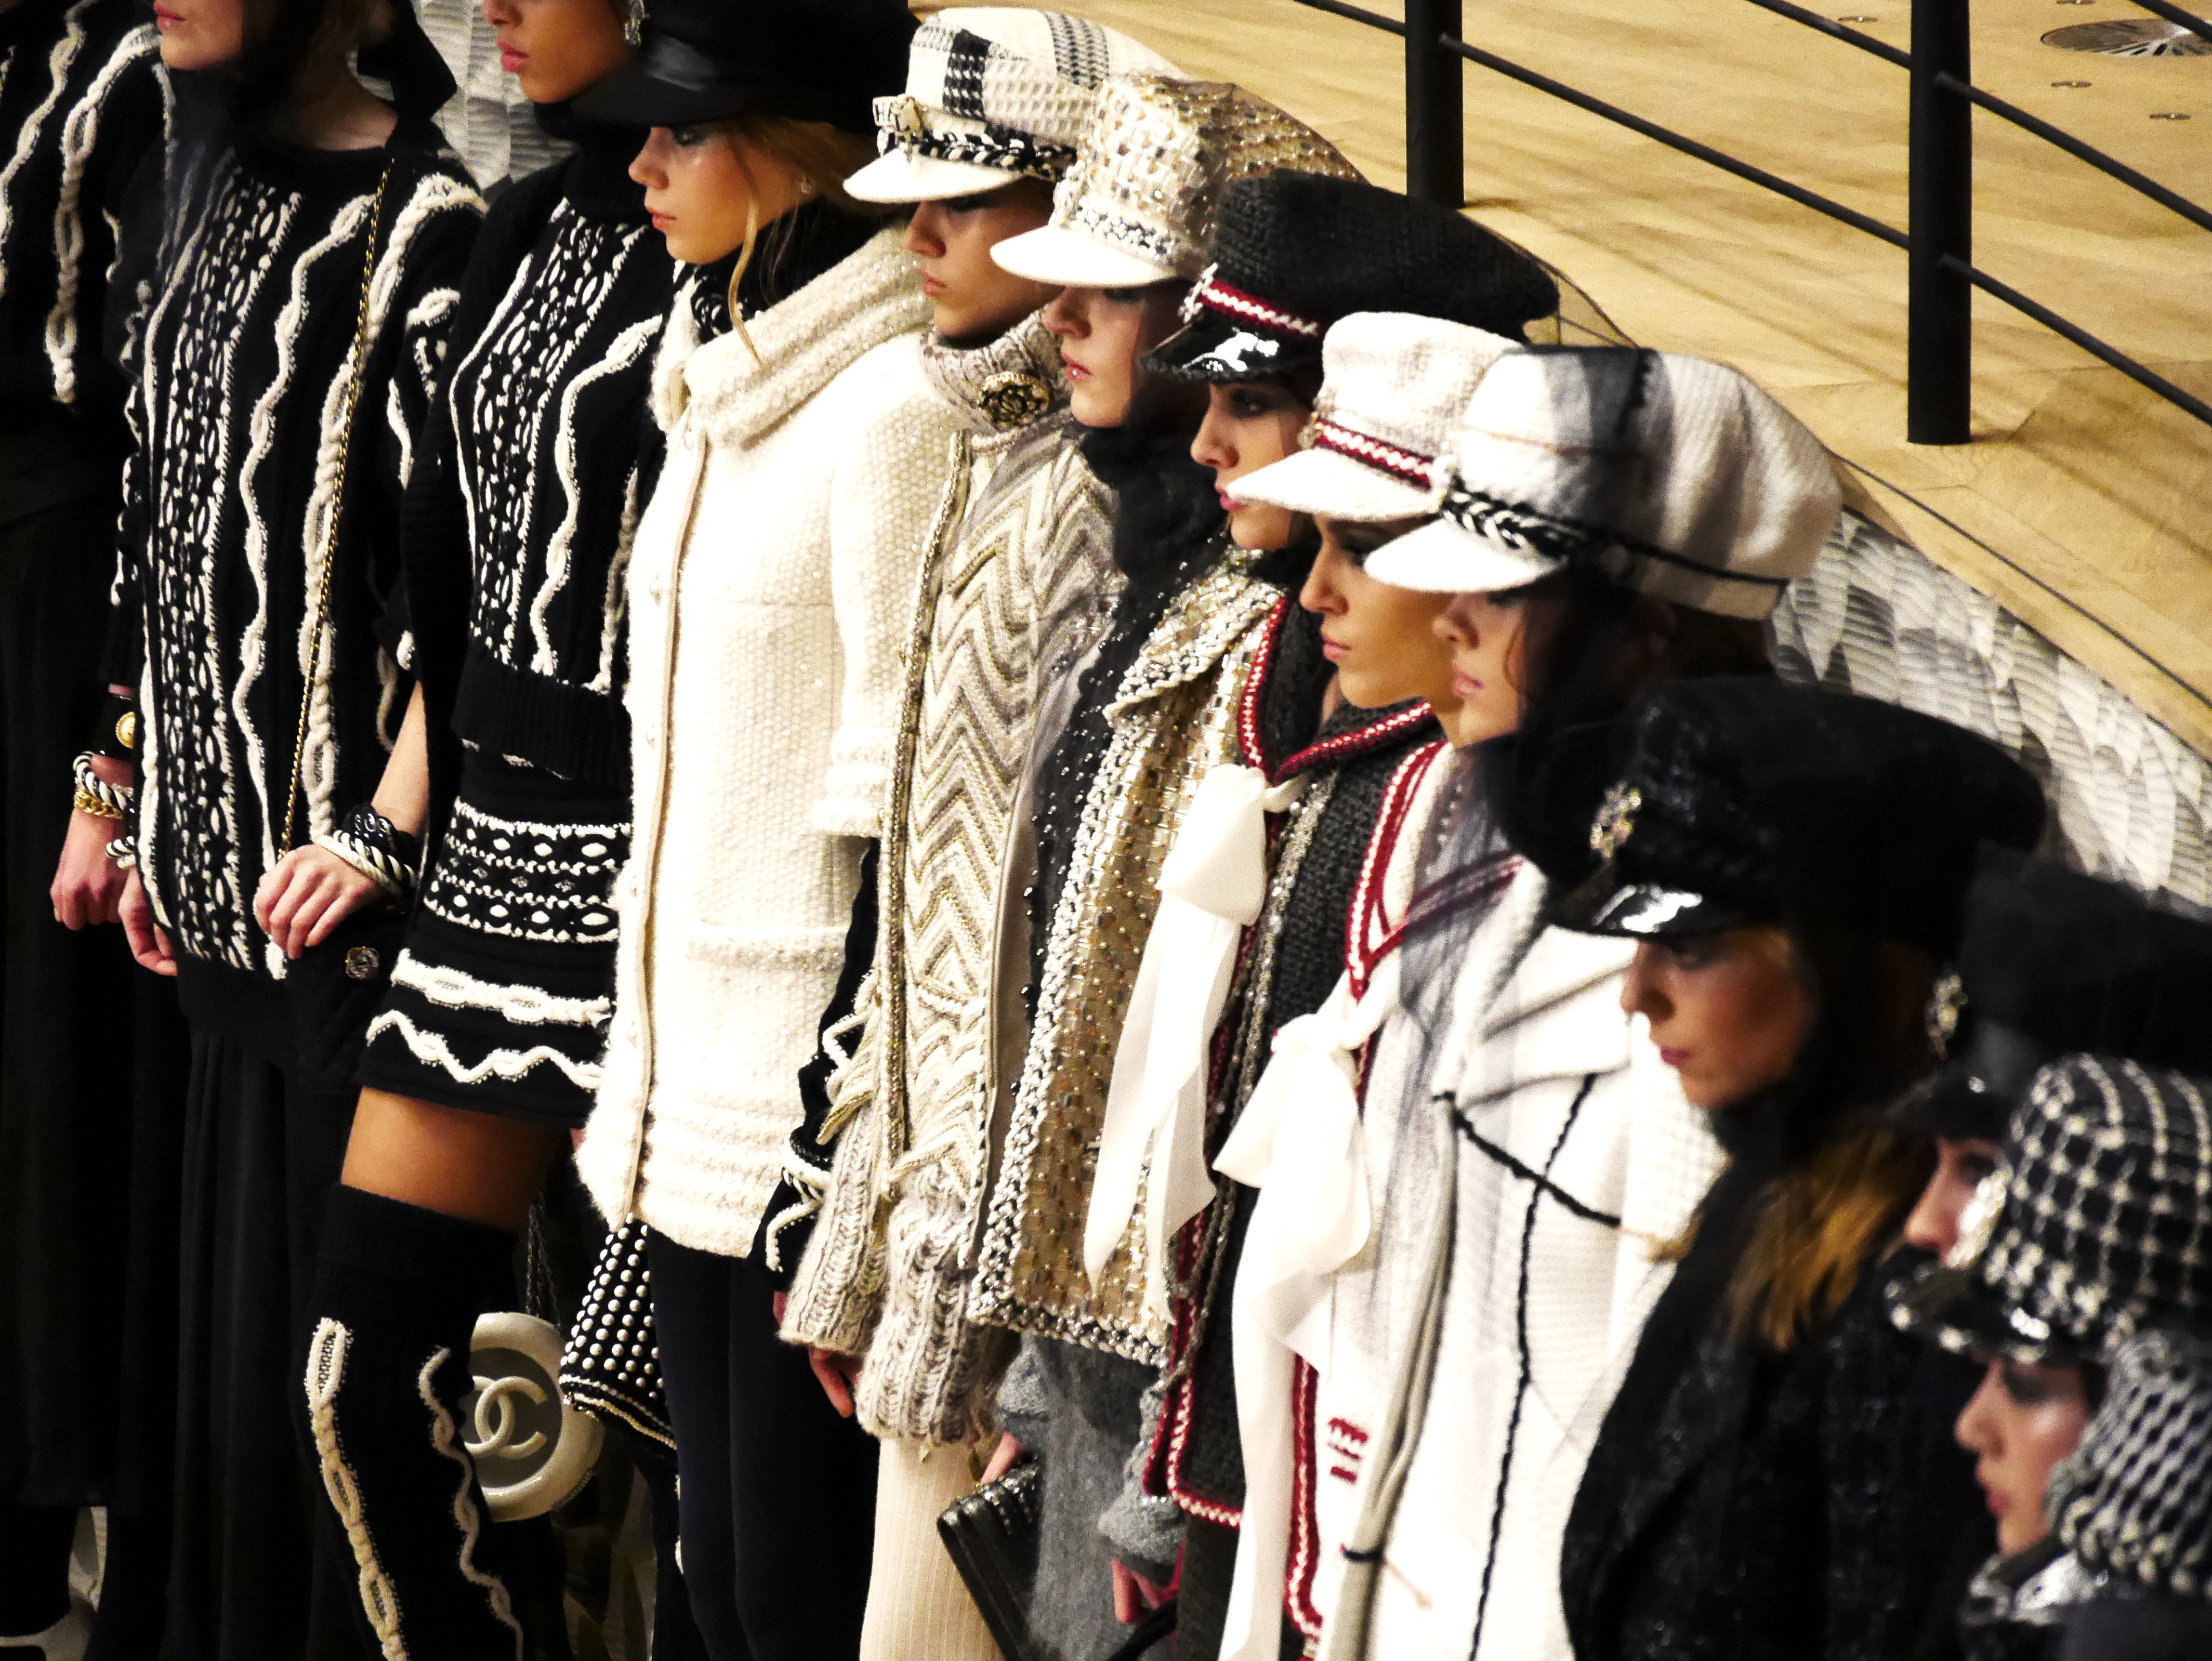 PAST, PRESENT AND FUTURE MEET AT THE CHANEL METIERS D'ART SHOW